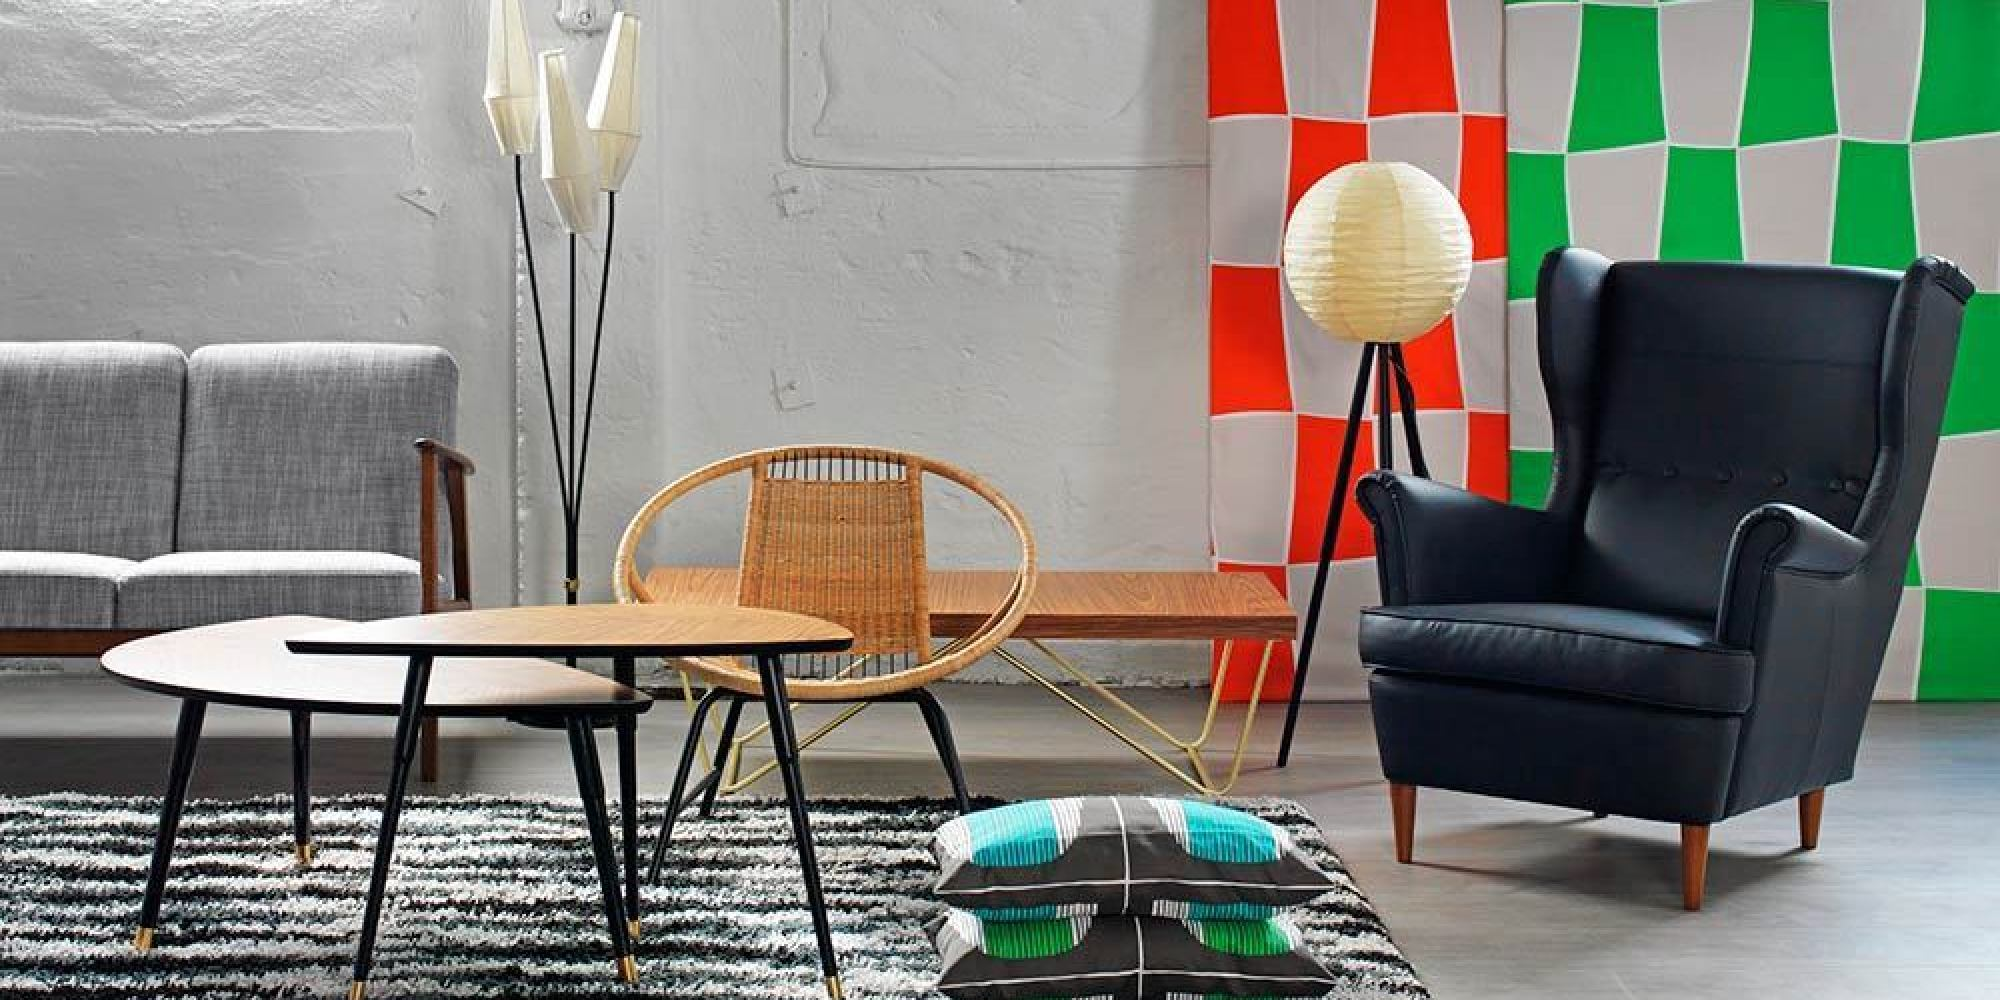 ikea reissues 26 furniture and accessory designs from the 1950s to 1970s huffpost. Black Bedroom Furniture Sets. Home Design Ideas